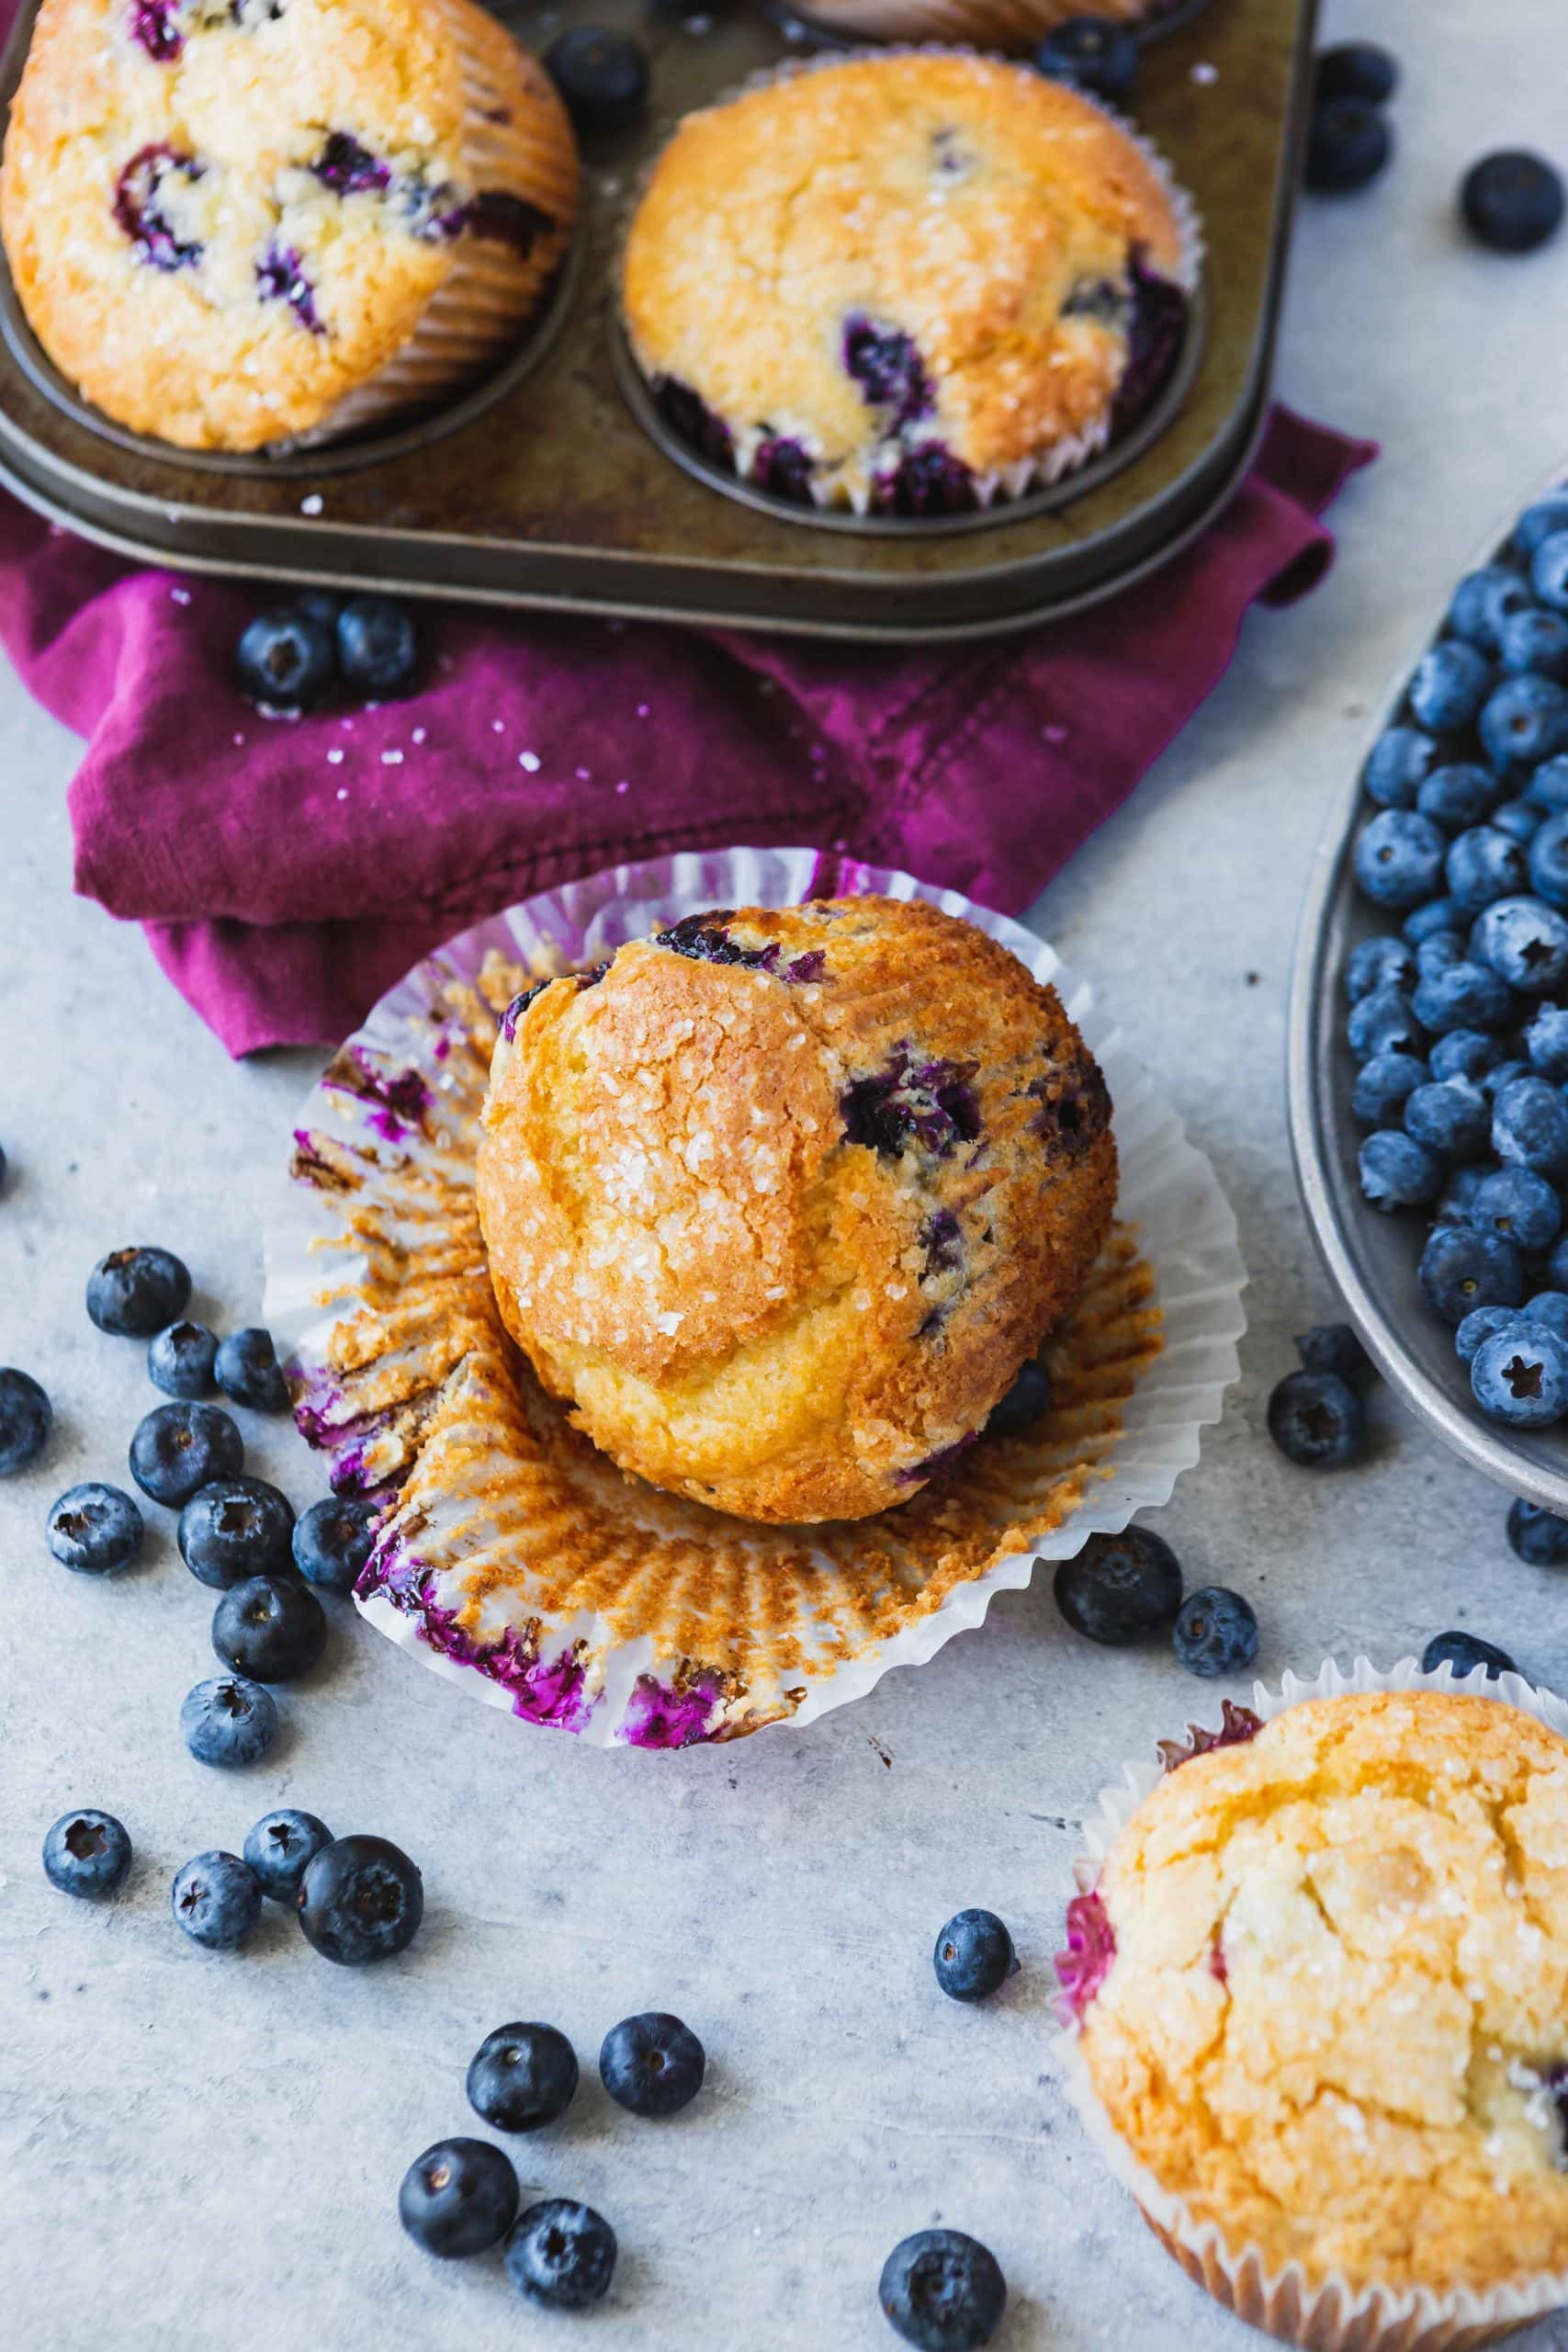 Raspberry pie with parchment paper down.  The cakes are golden brown and you can see blueberries in the cakes.  There is a bowl of blueberries, blueberries are scattered on the table top, and a pan with pancakes is in the background